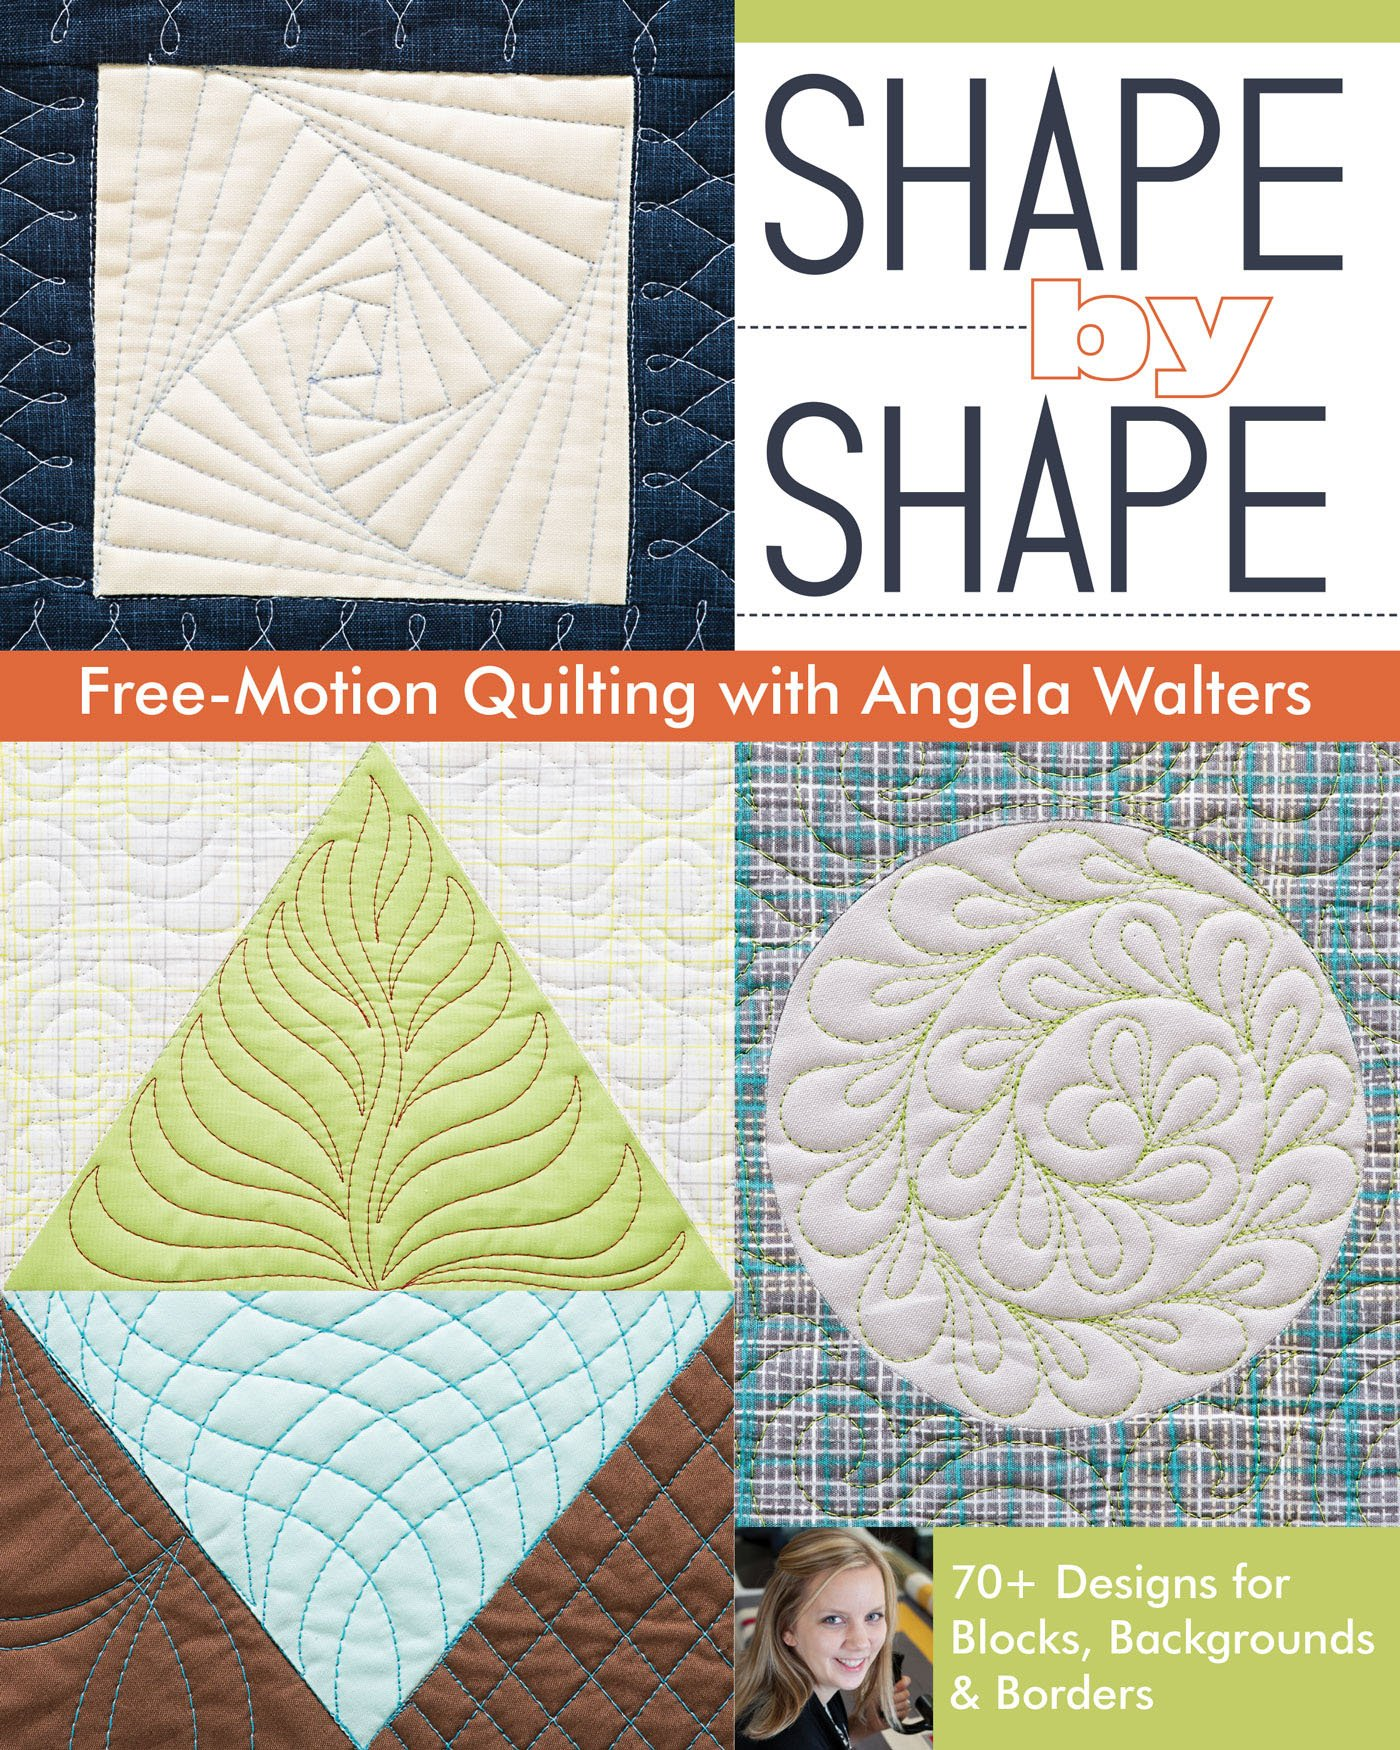 Shape by way of Shape Free-Motion Quilting with Angela Walters: 70+ Designs for Blocks, Backgrounds & Borders